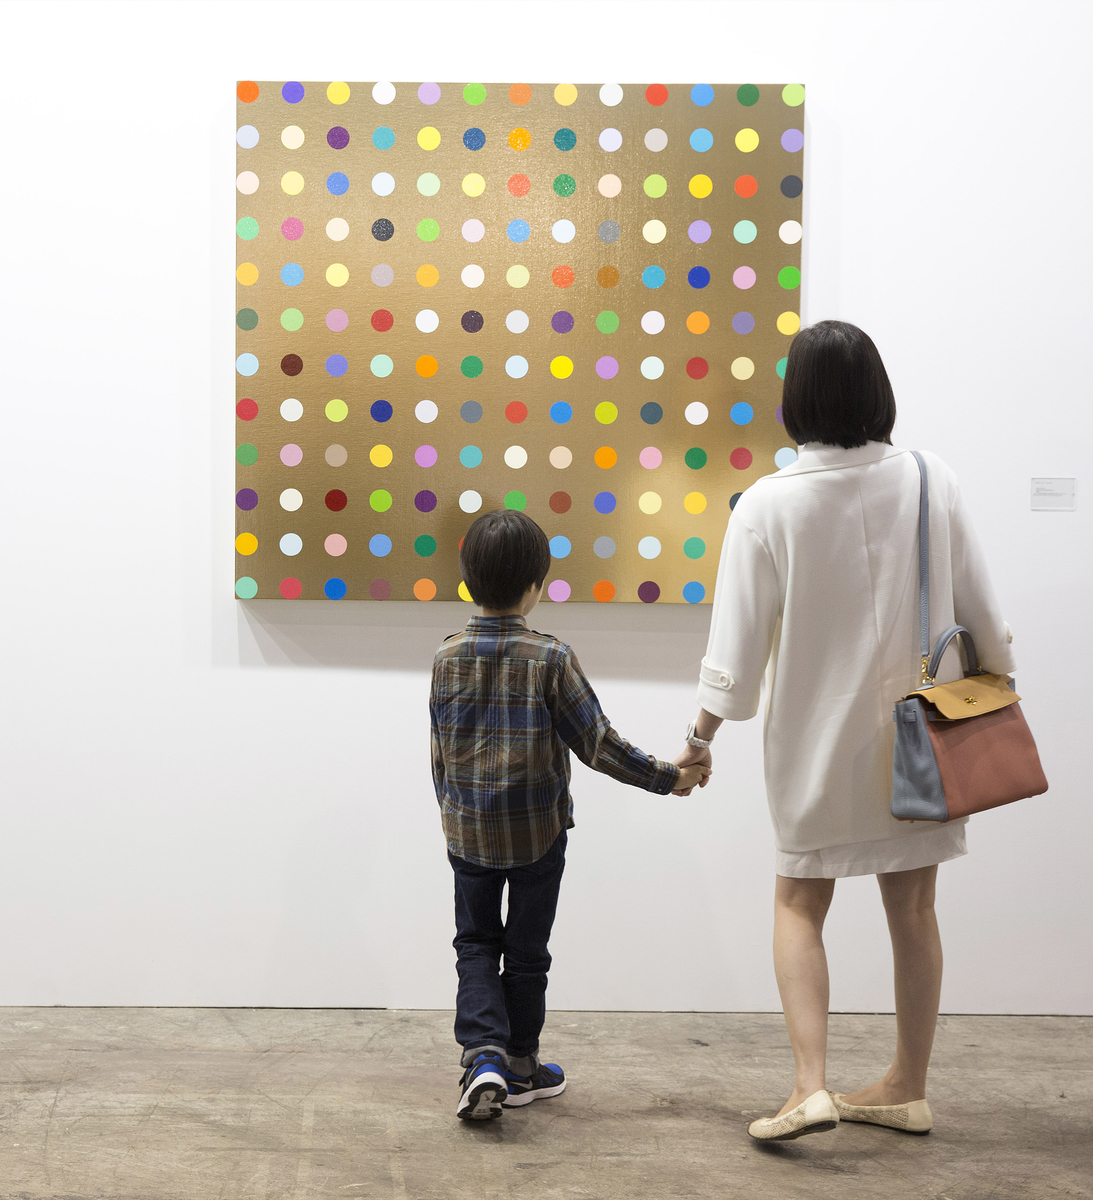 White Cube Gallery, Damien Hirst